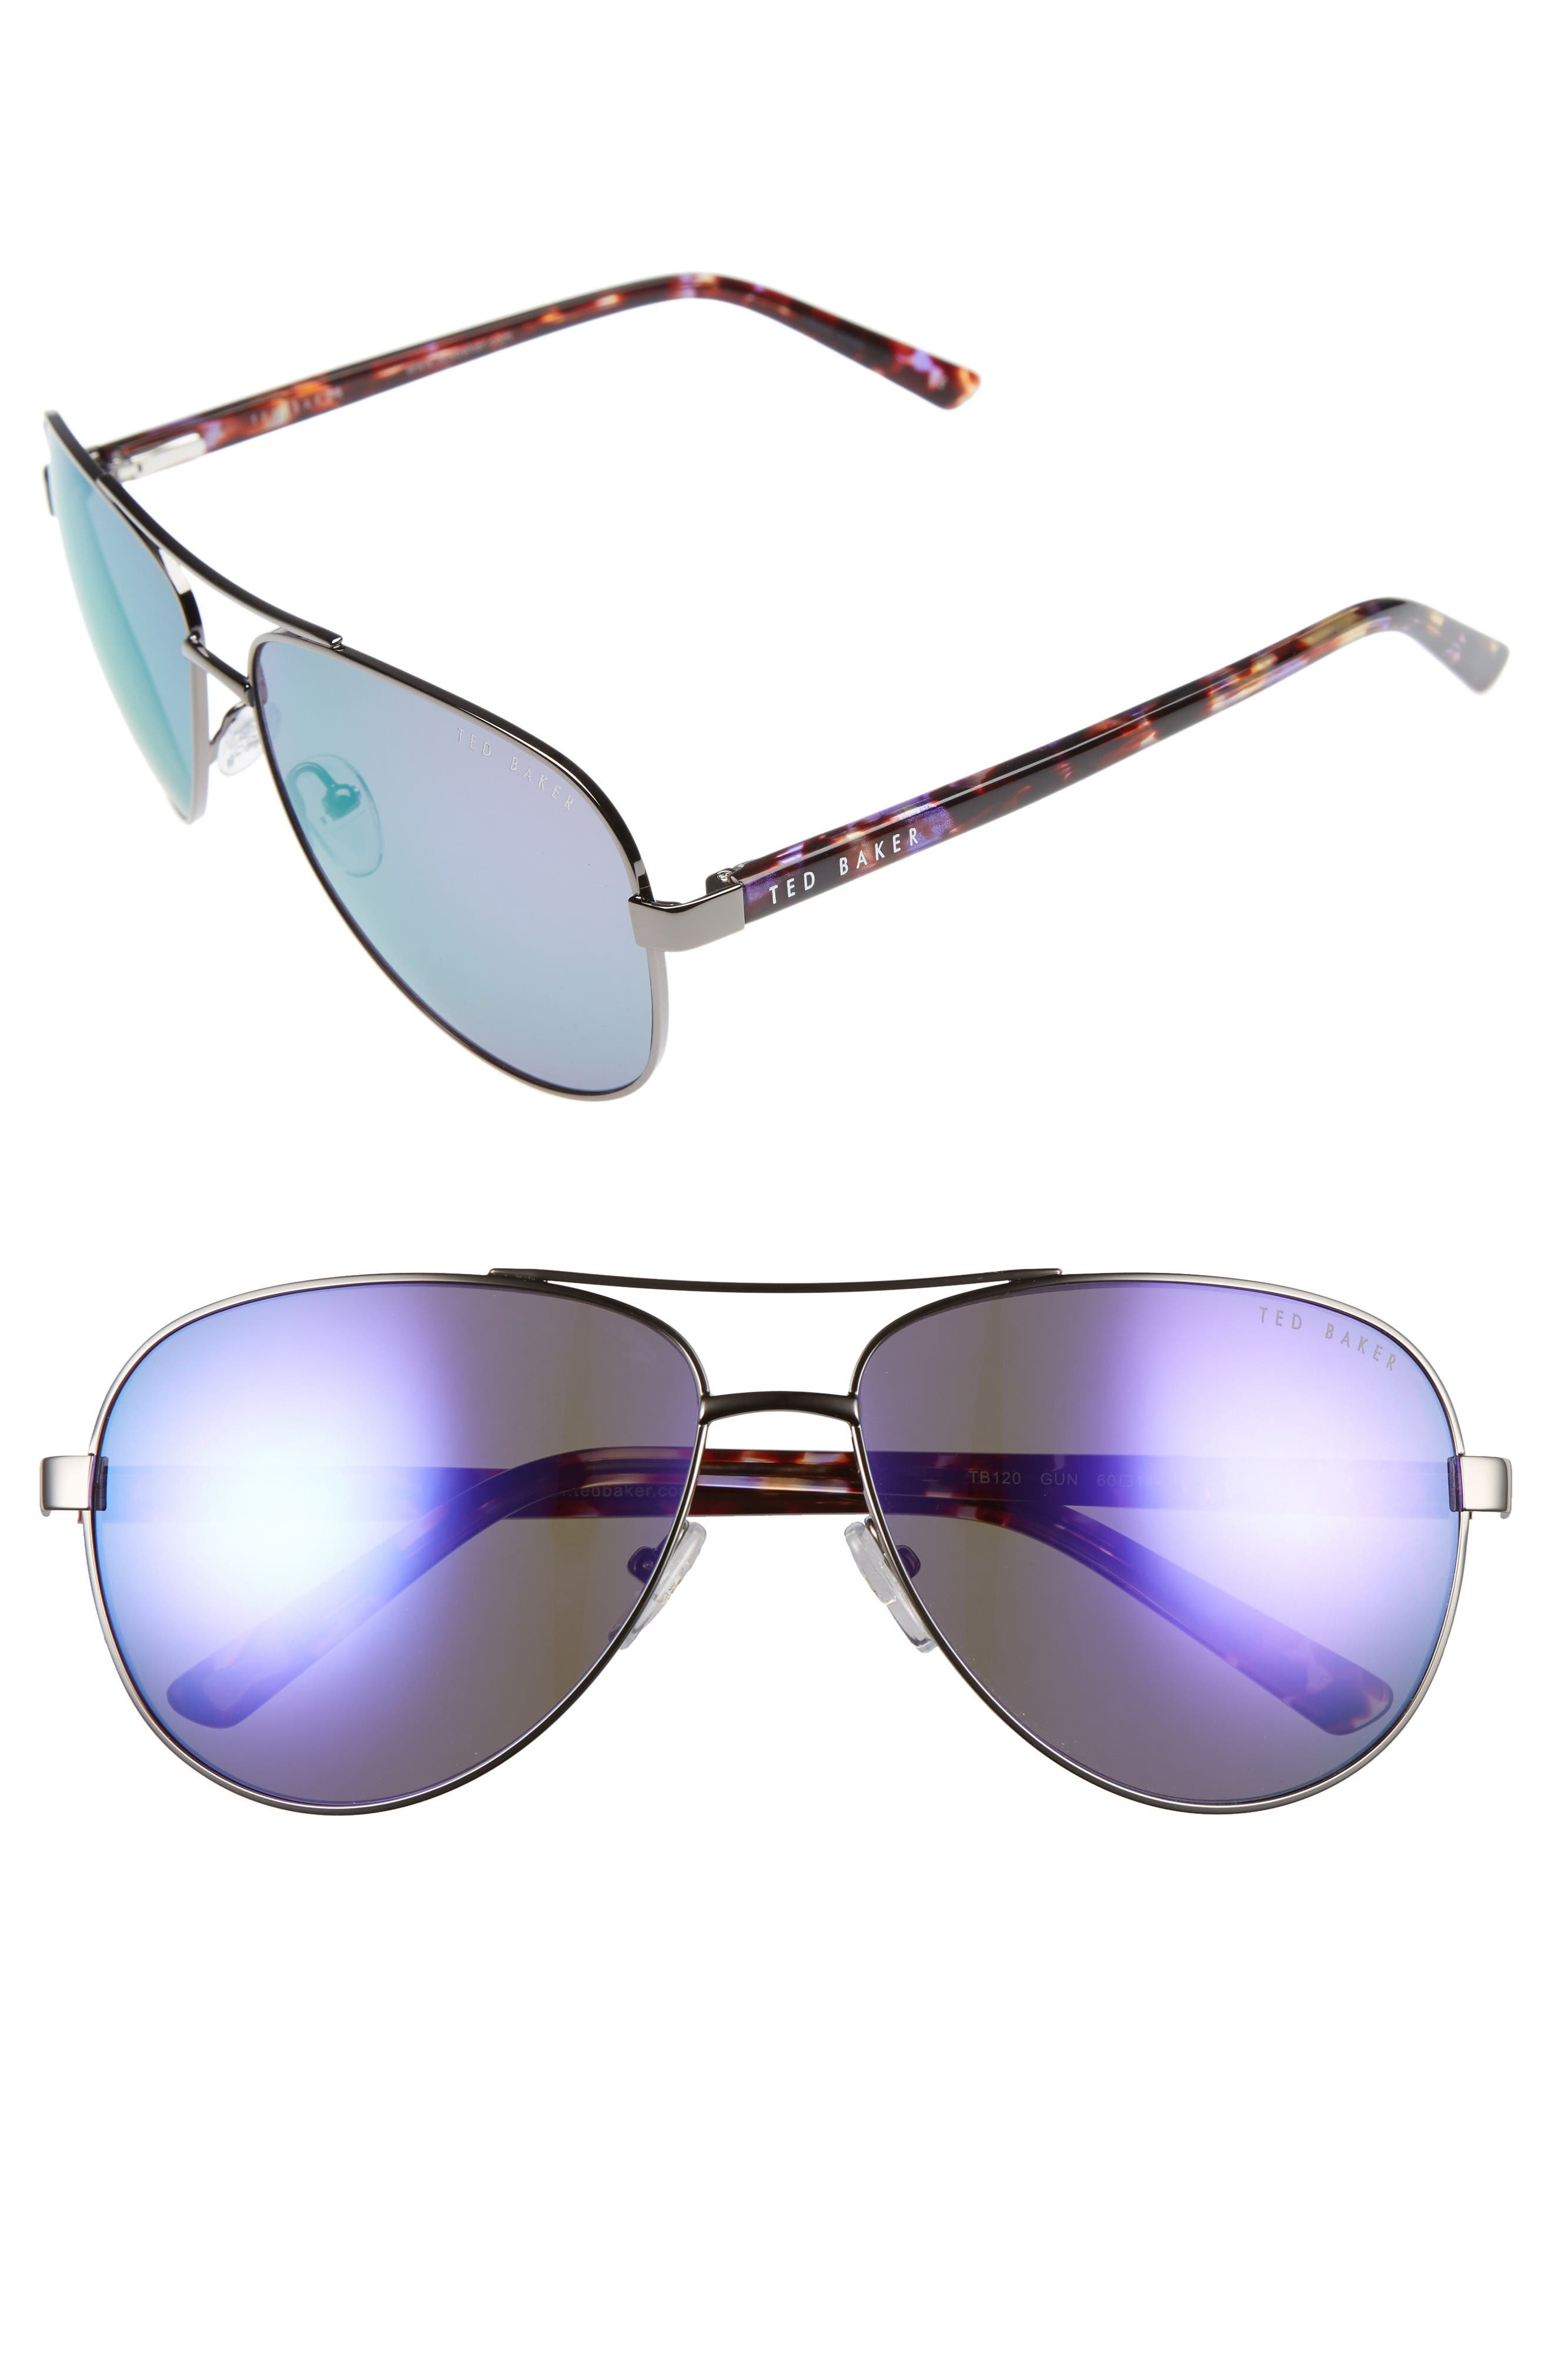 60MM AVIATOR SUNGLASSES - GUNMETAL